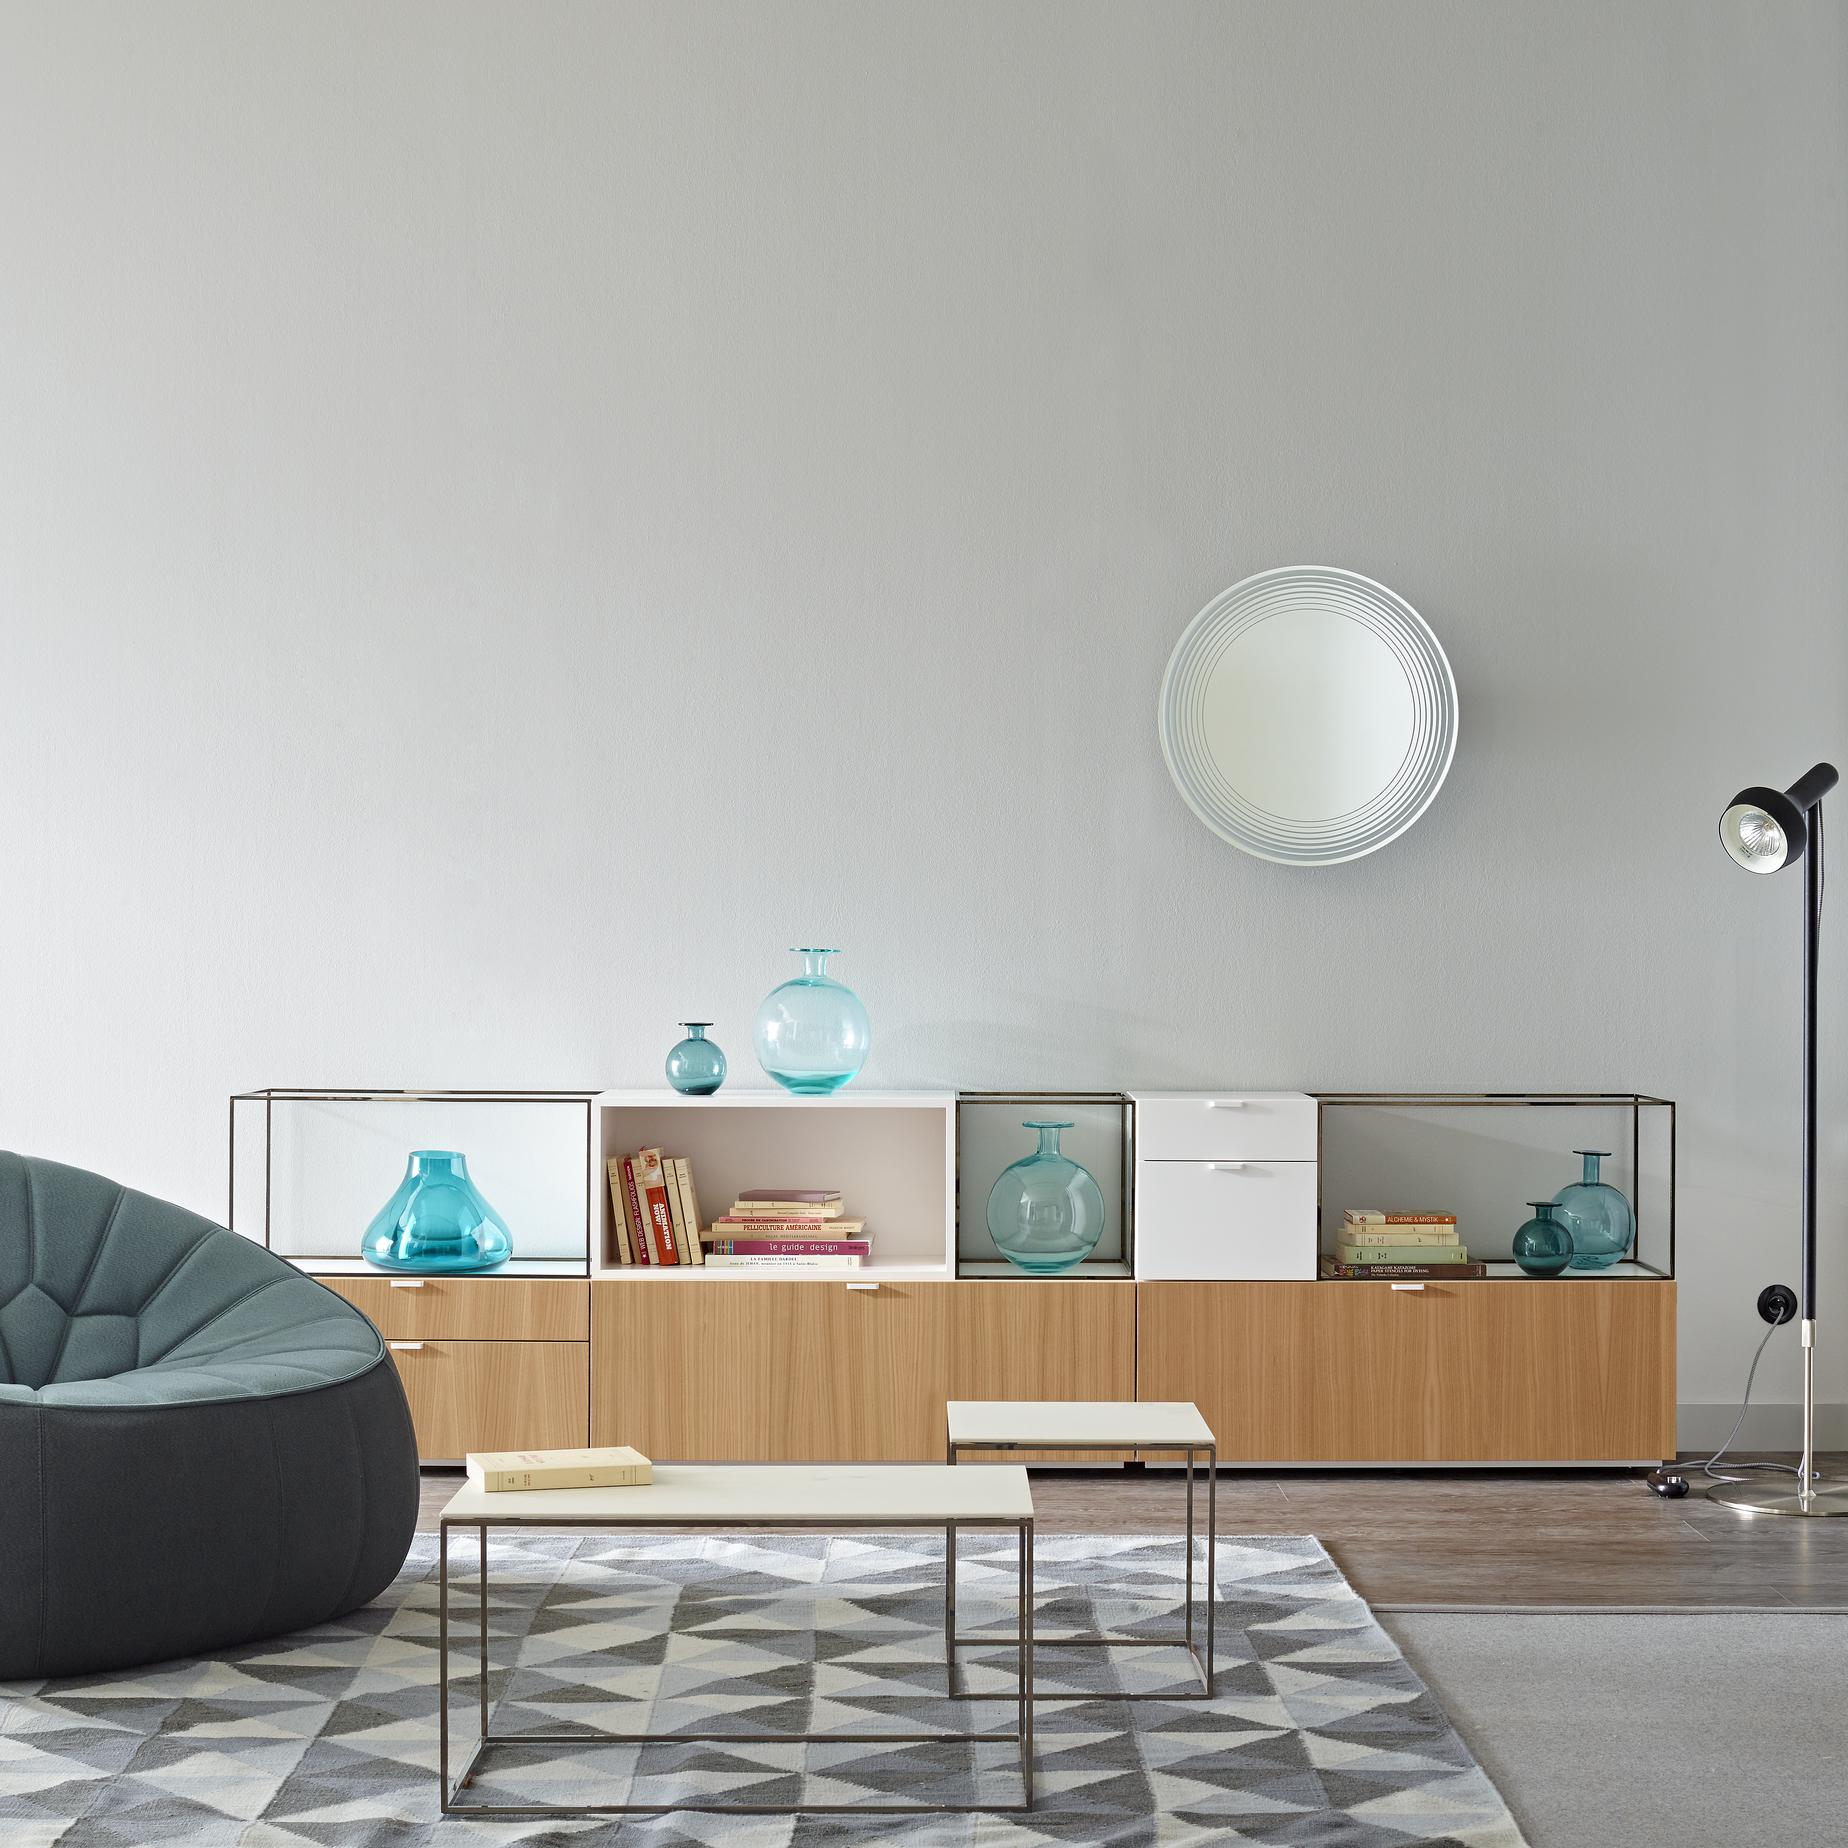 space occasional tables from designer pagnon pelha tre ligne roset official site. Black Bedroom Furniture Sets. Home Design Ideas